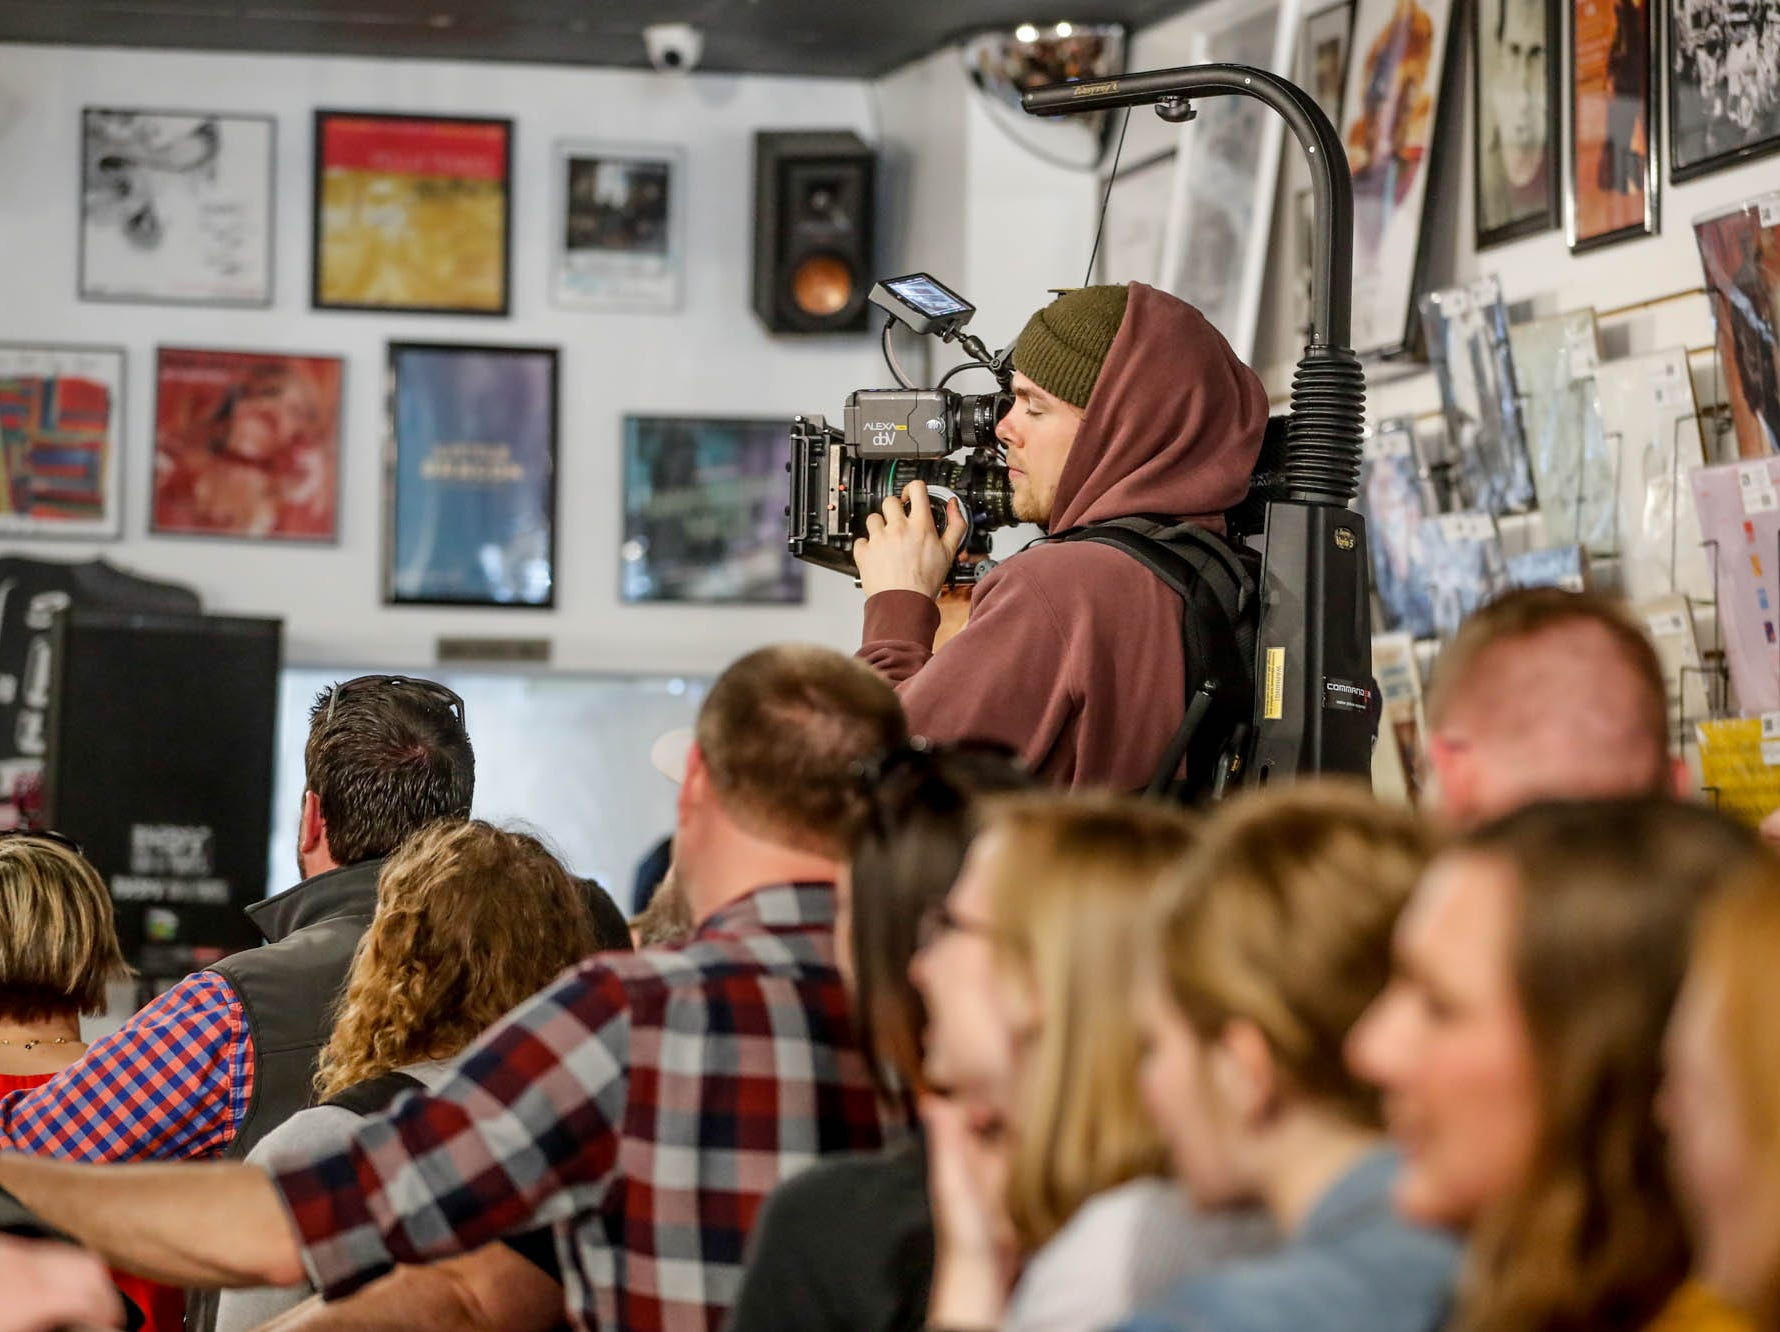 A Mumford & Sons video crew members films as fans pack the store for the the band's special in-store appearance at Indy CD & Vinyl on Monday, March 25, 2019.